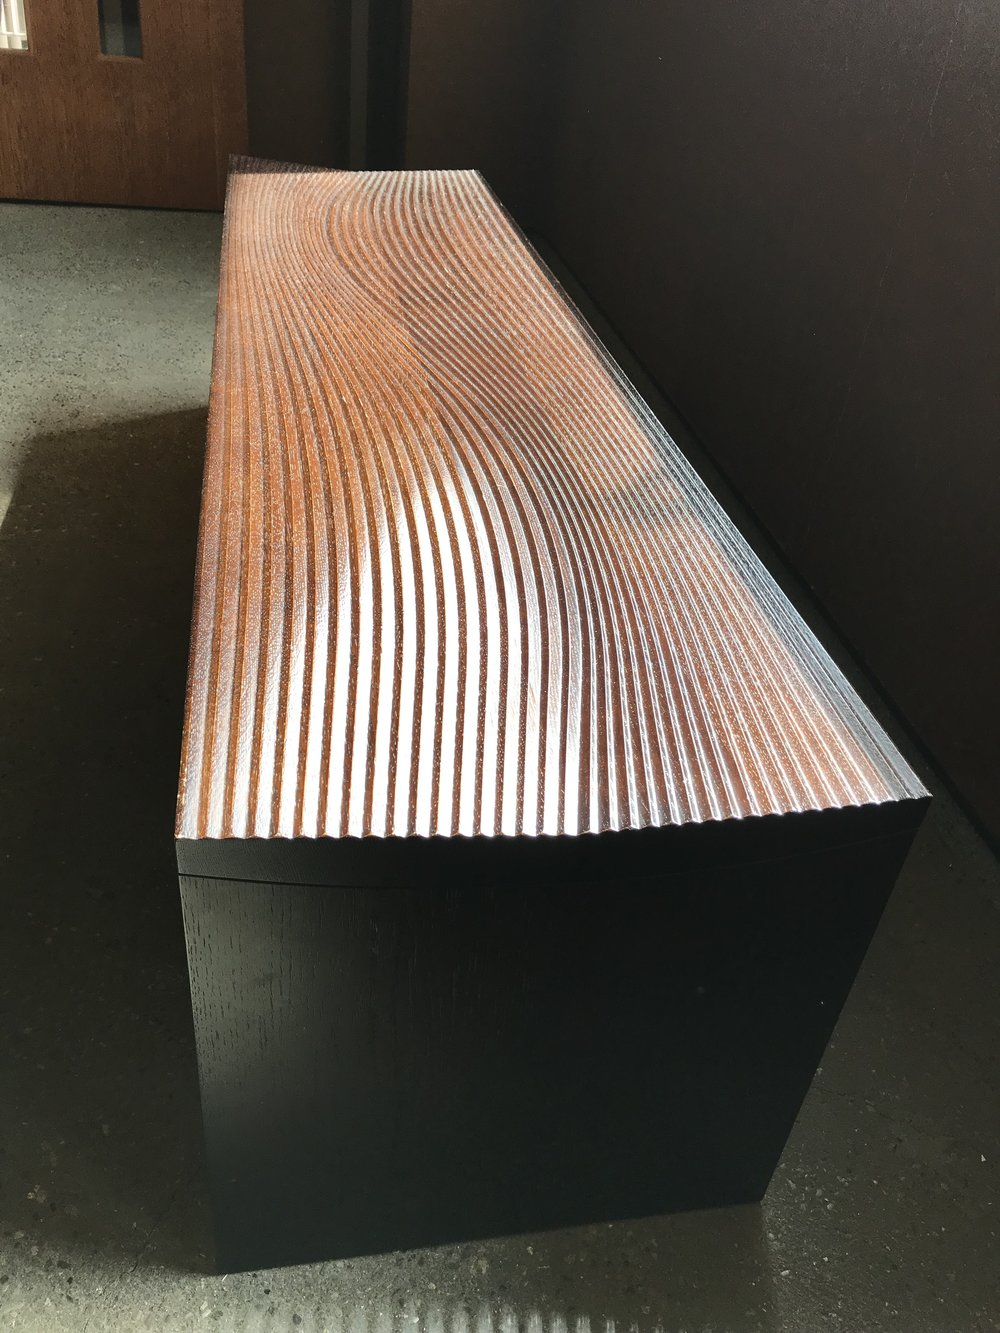 Beautiful simple piece of Japanese furniture design